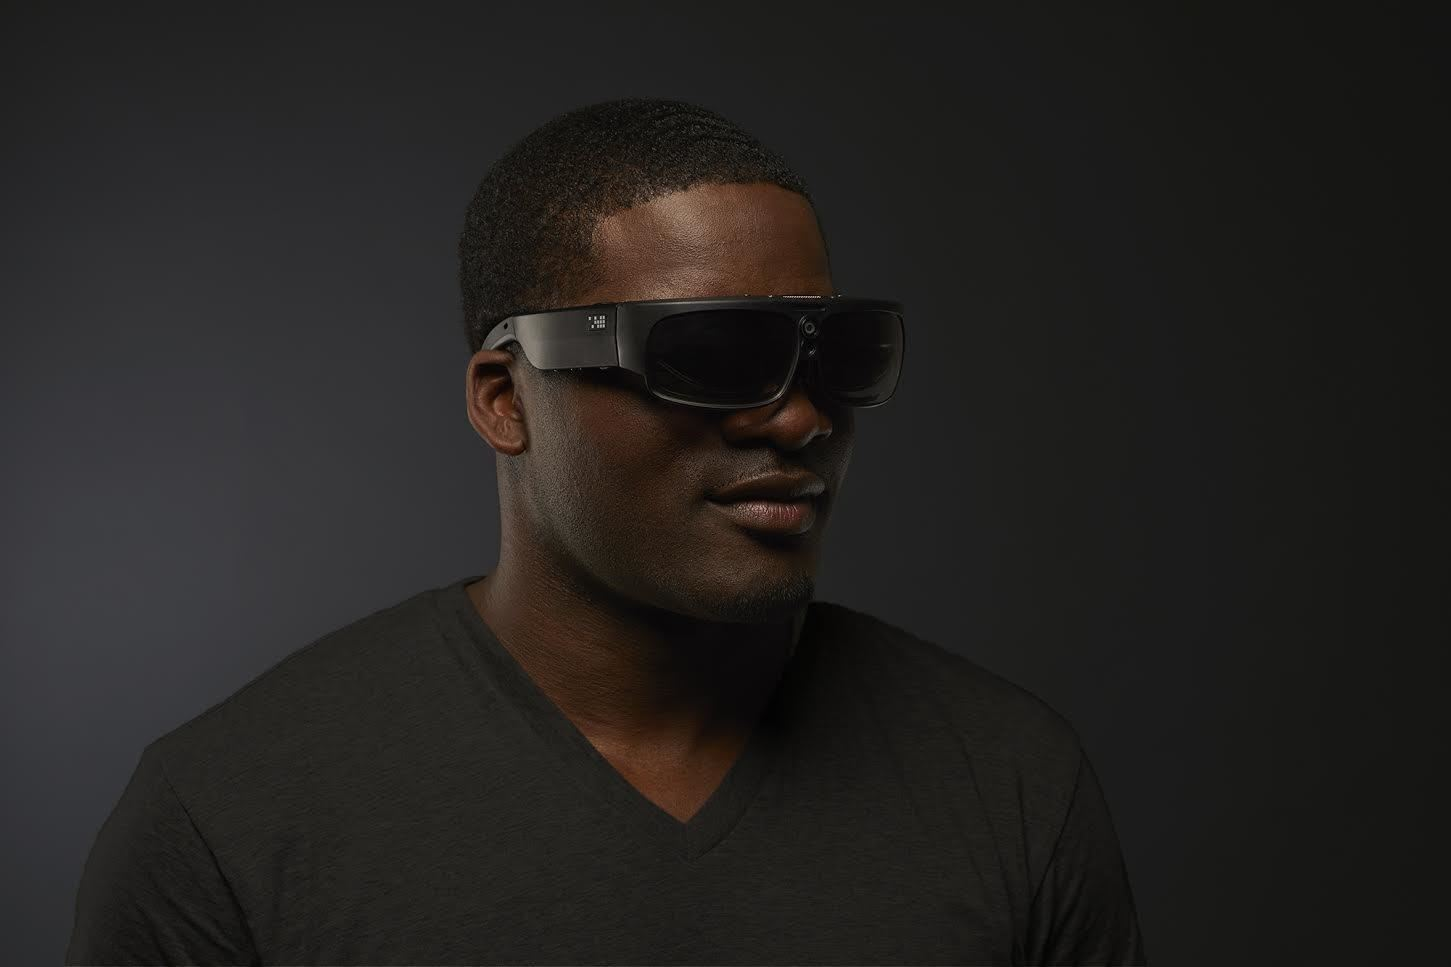 Osterhout Design Group Announces 8th & 9th Generation Smartglasses—Starting at Under $1,000